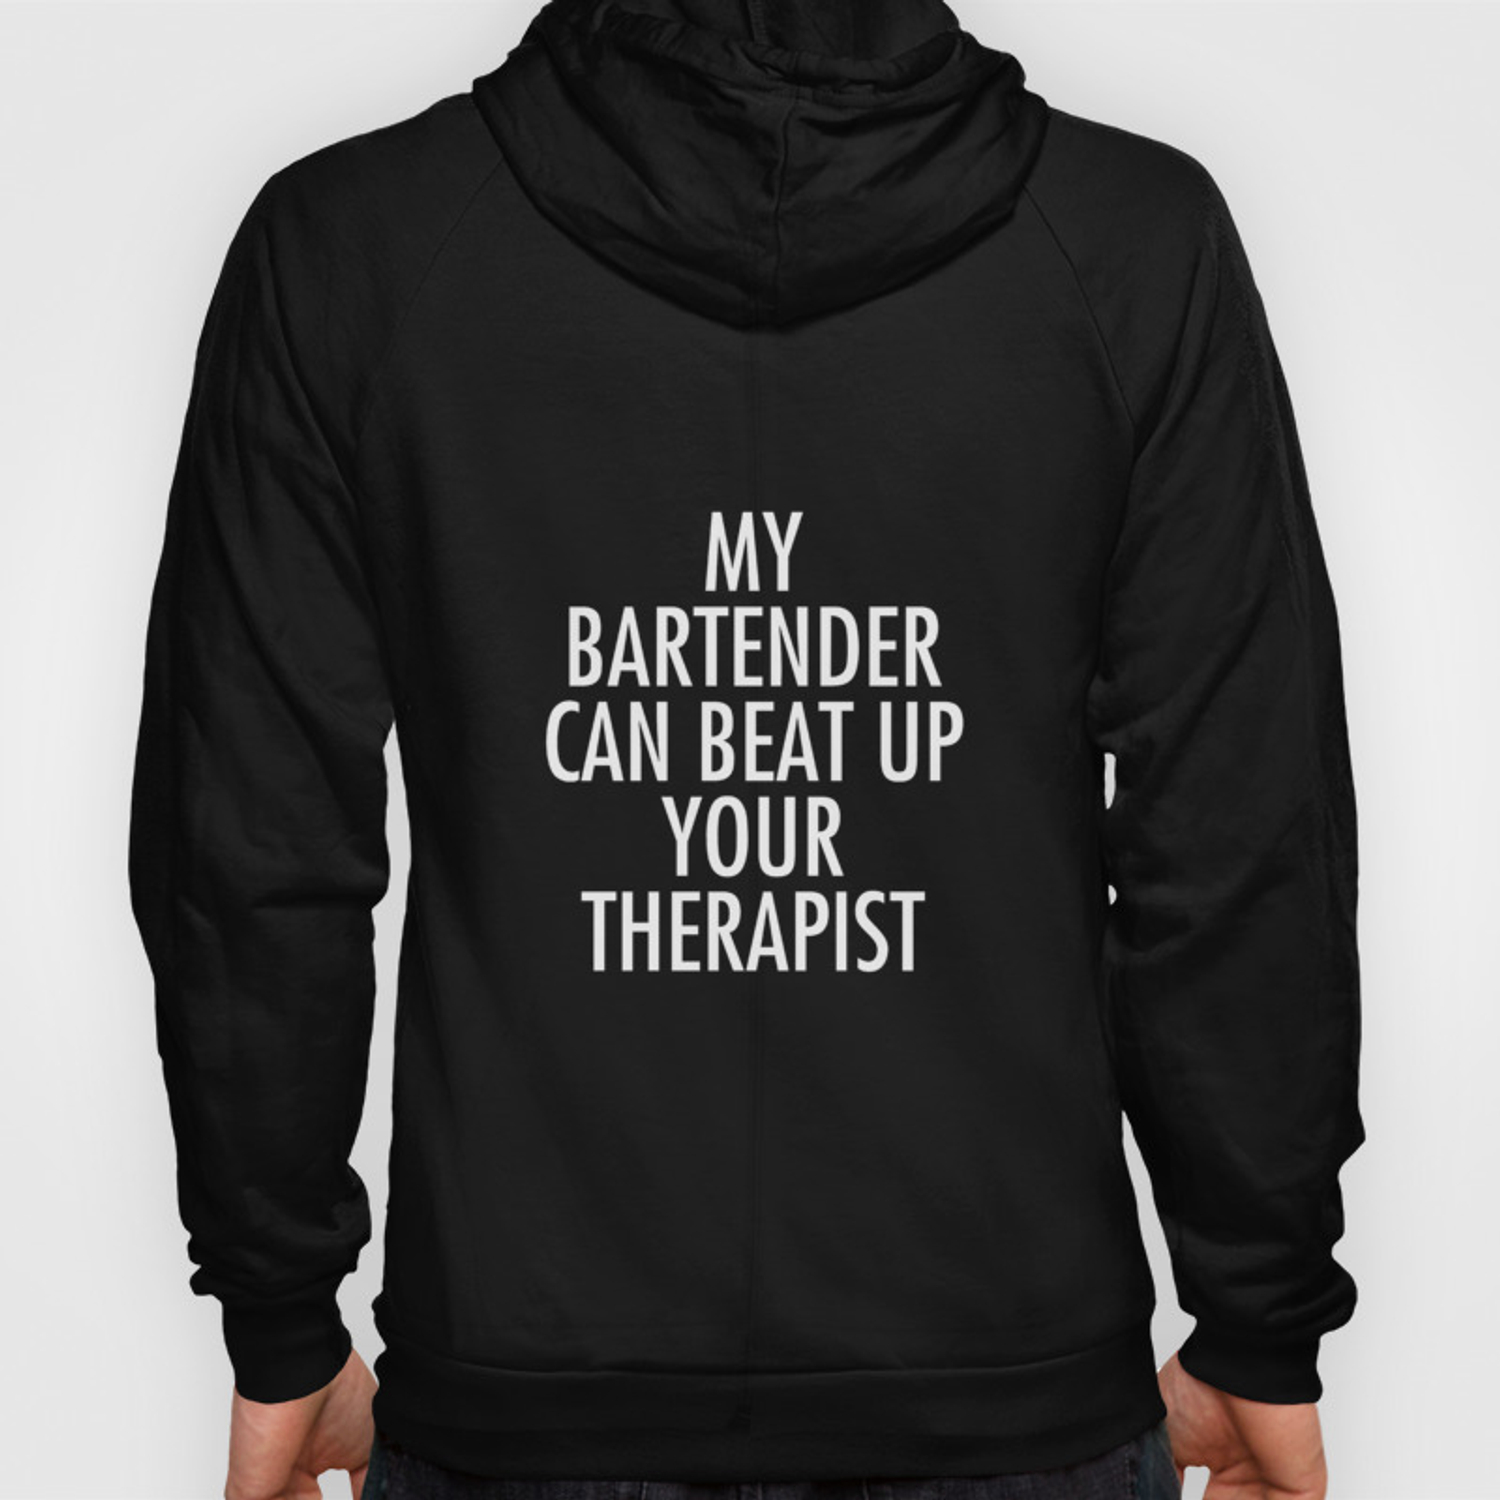 291bbd2f My Bartender Can Beat Up Your Therapist Funny T-Shirt Hoody by ...